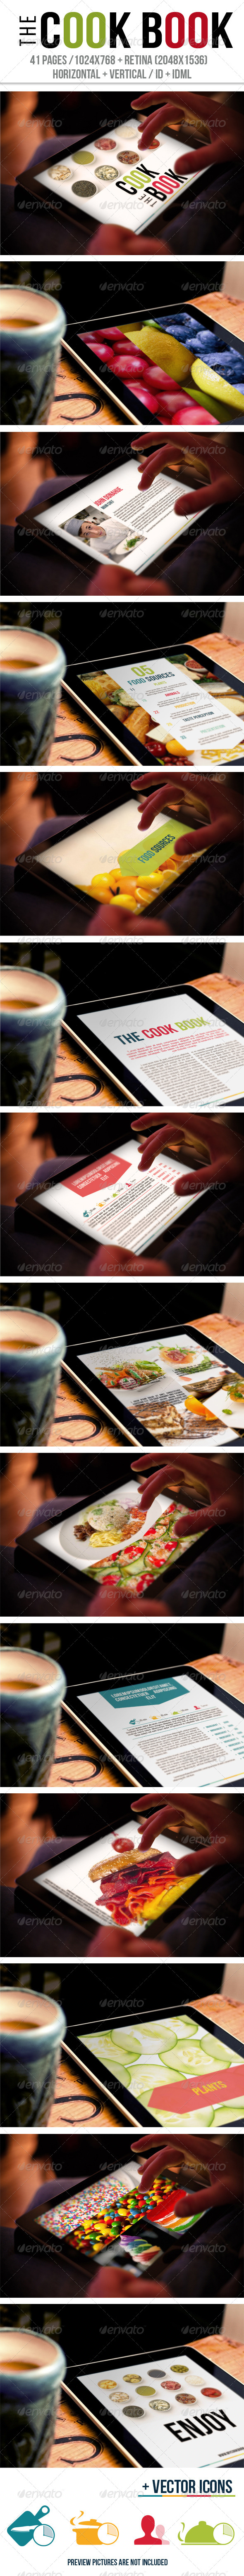 iPad & Tablet  The Cook Book  - Digital Magazines ePublishing